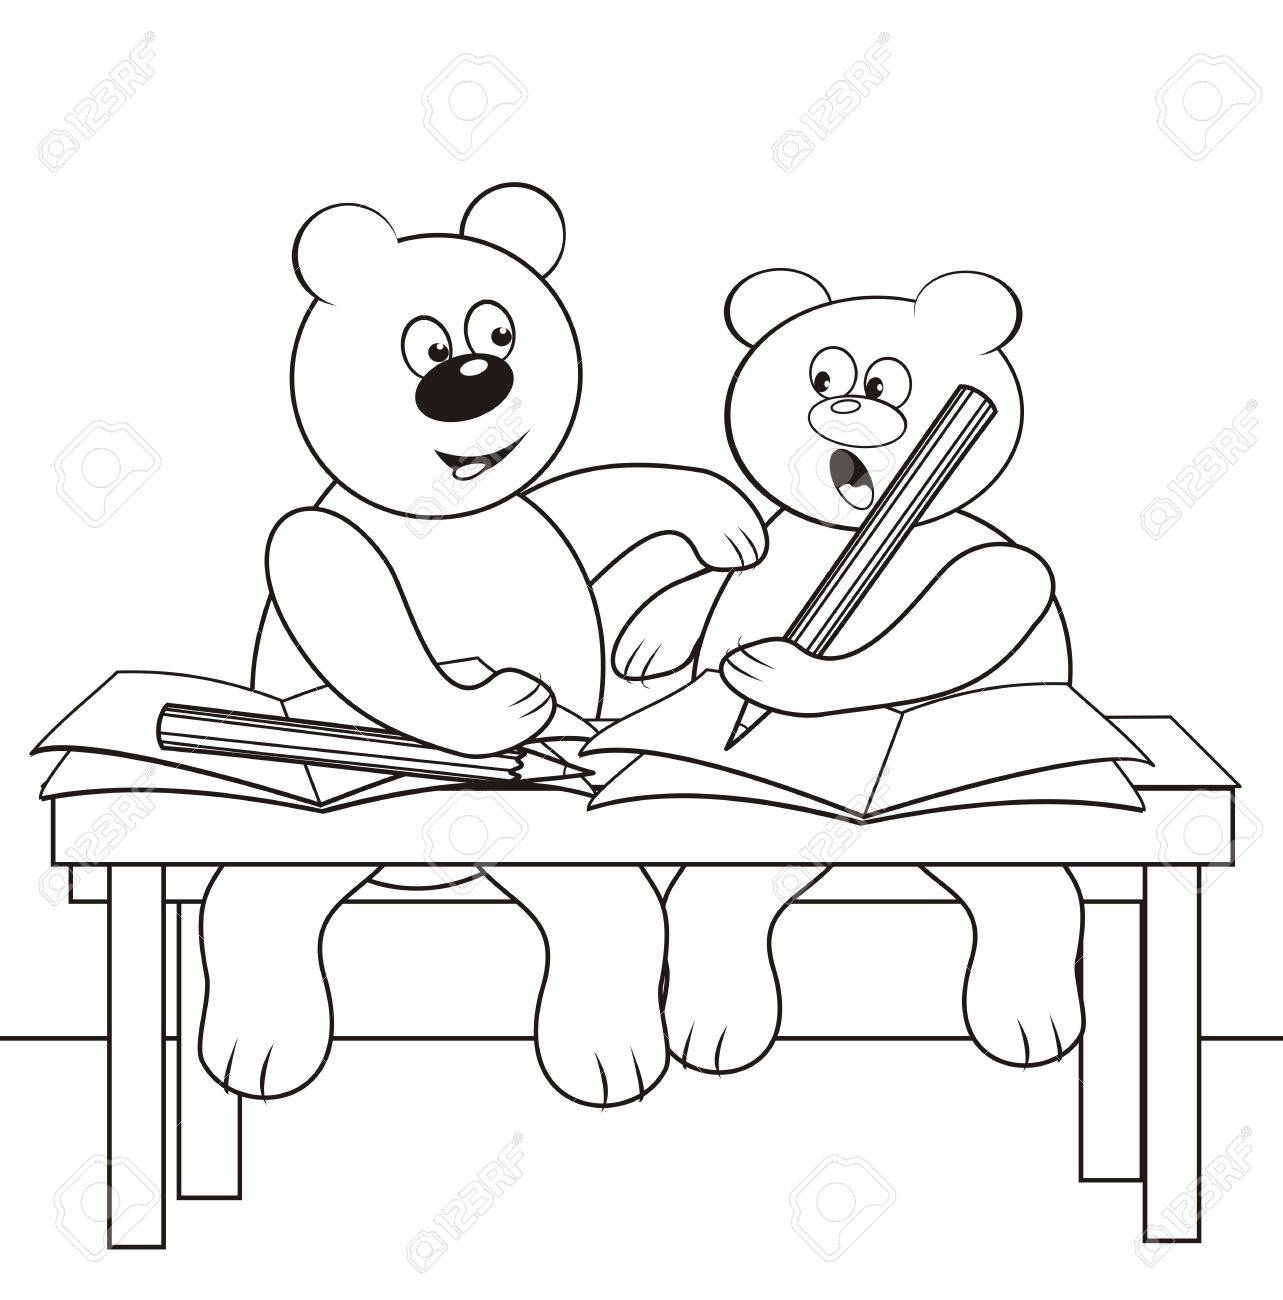 bears in the school - coloring book